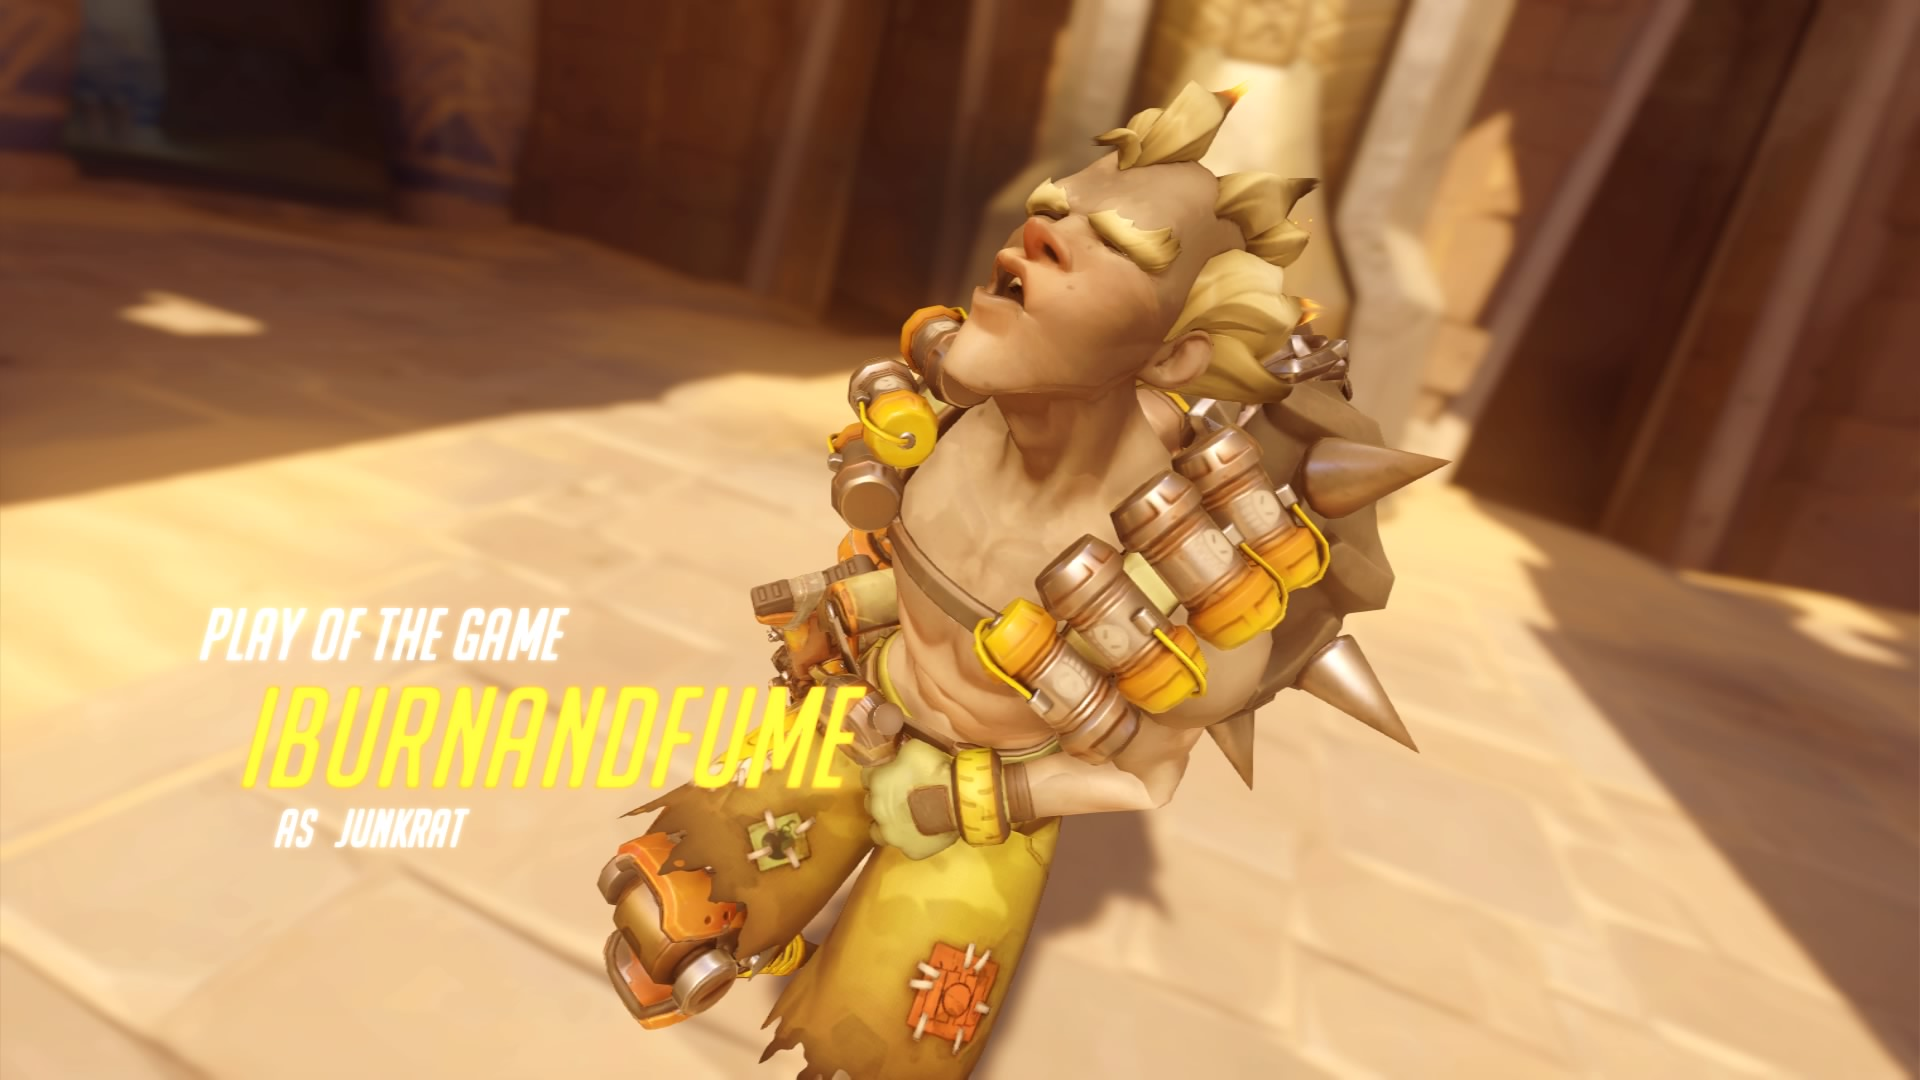 Only Junkrat was hurt in the making of this review.